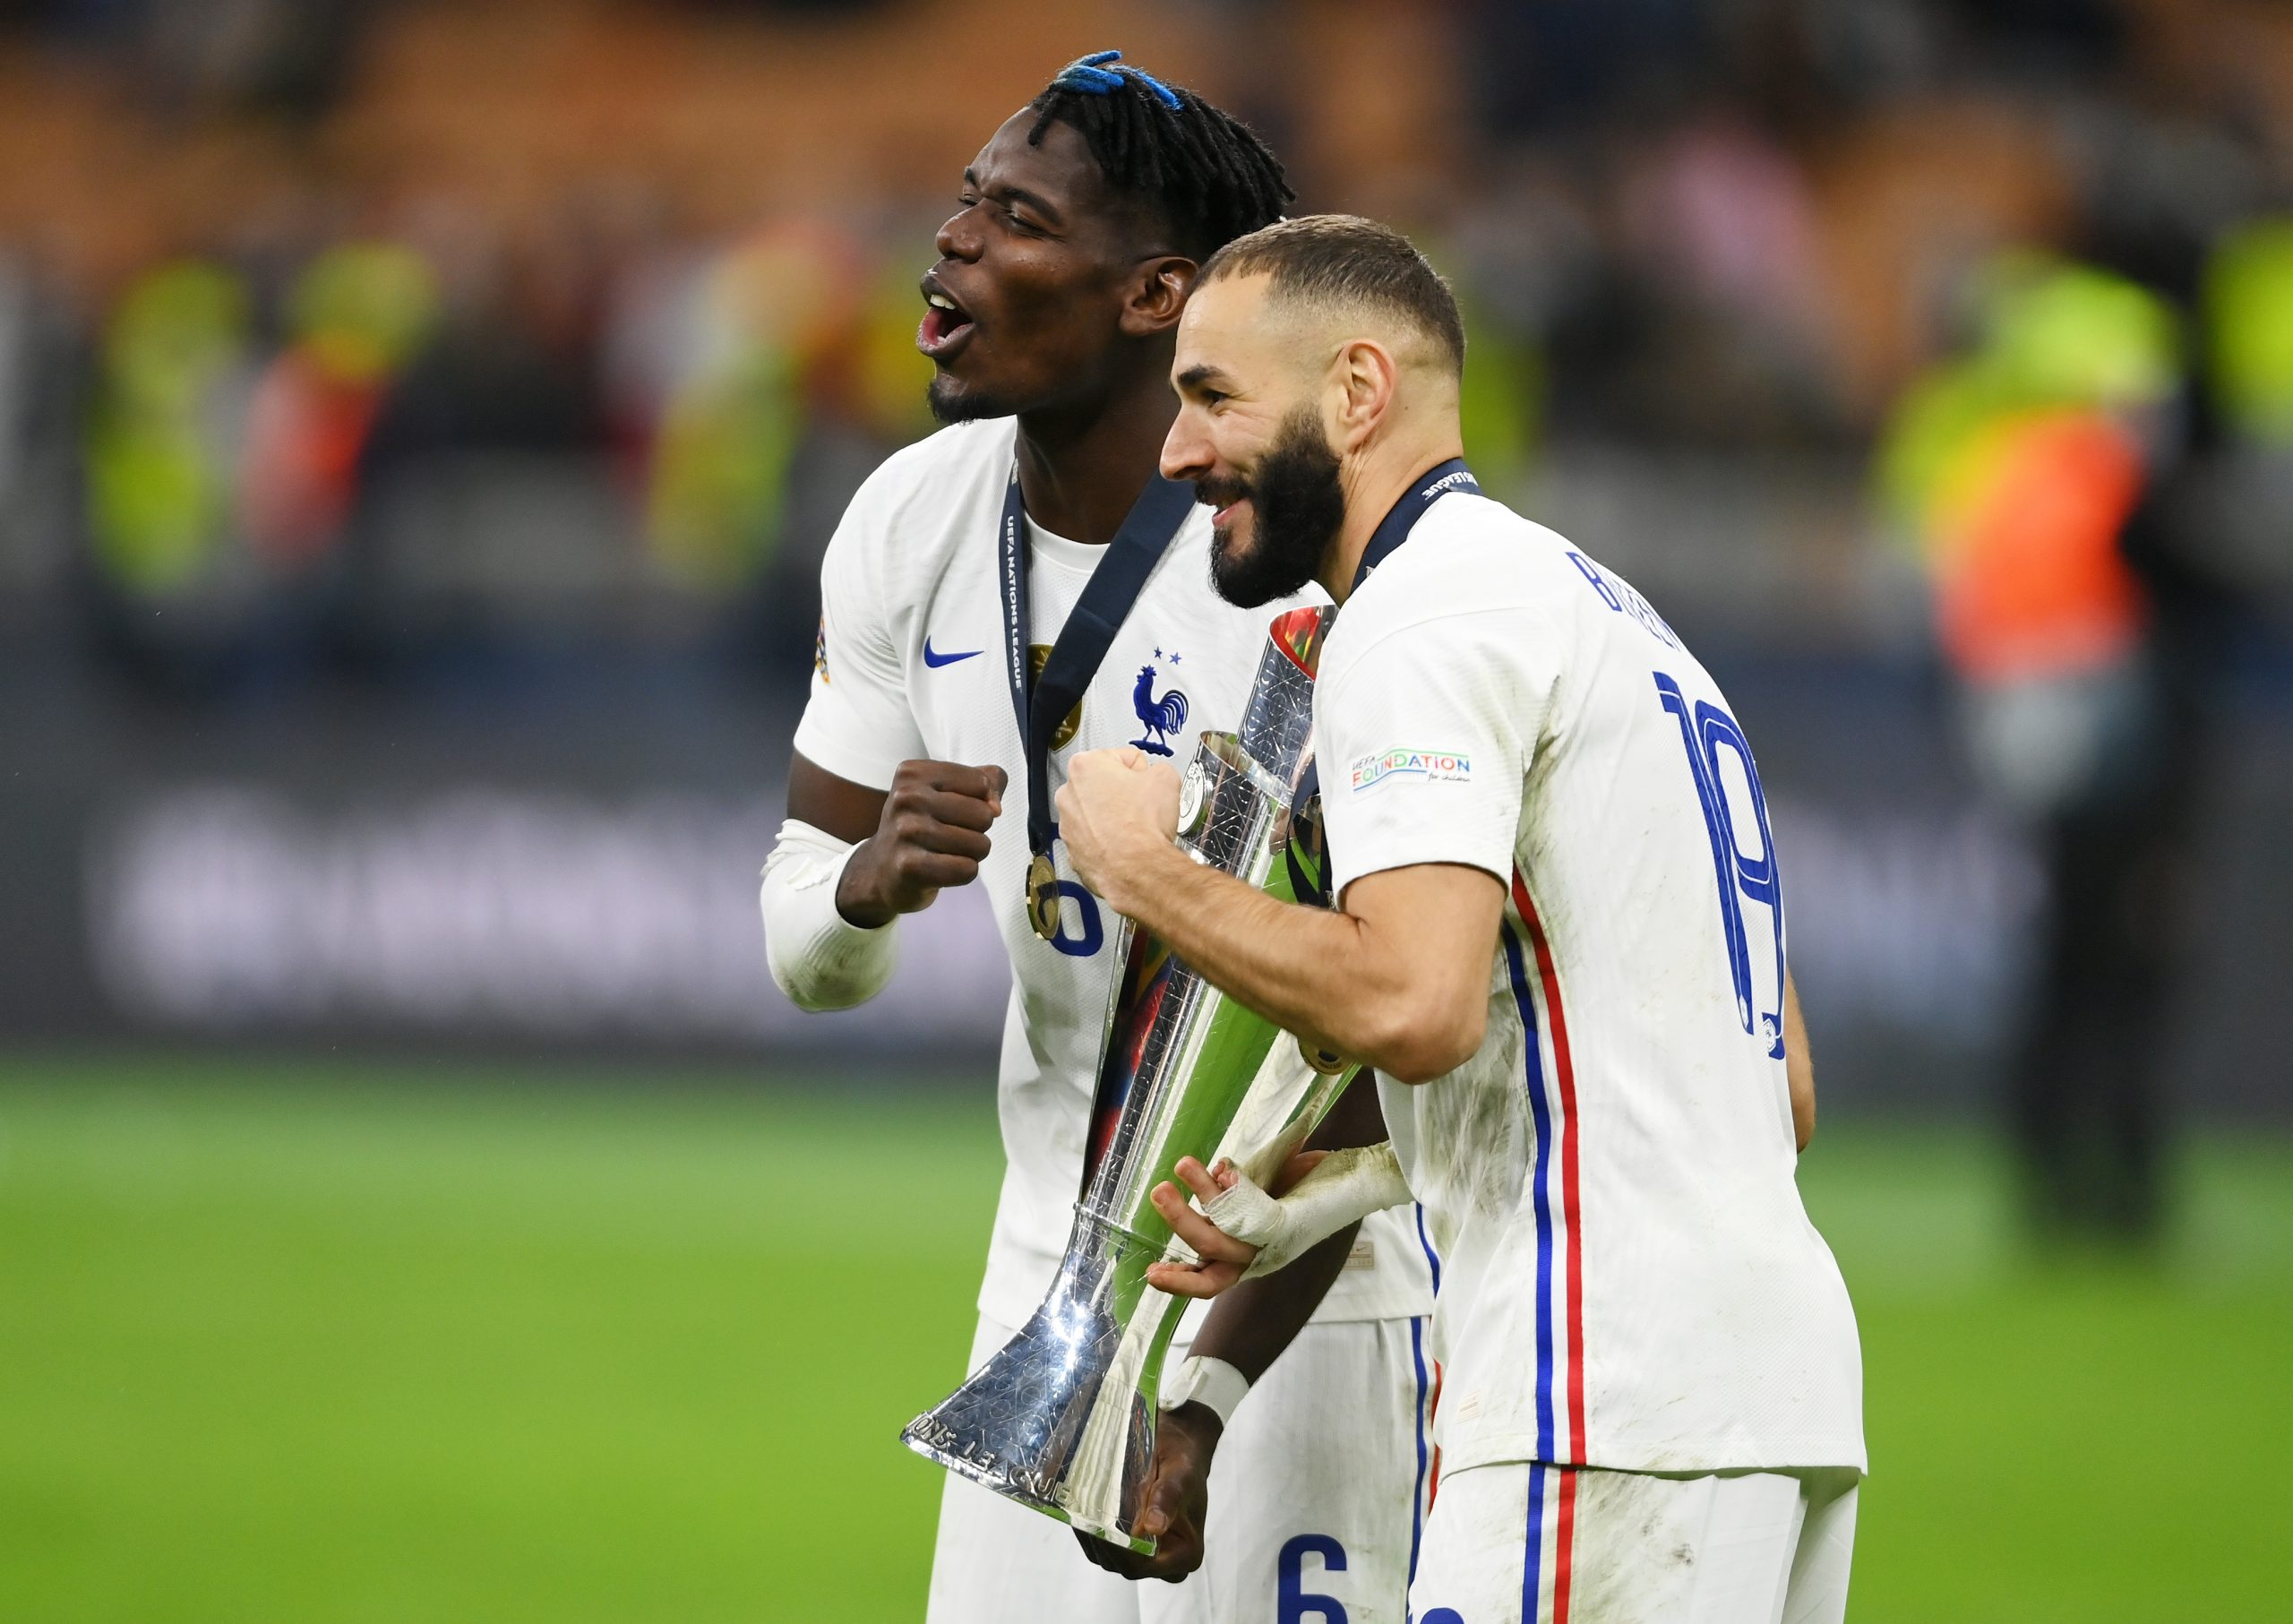 """Karim Benzema reacts to Nations League win: """"This team has great potential."""" 